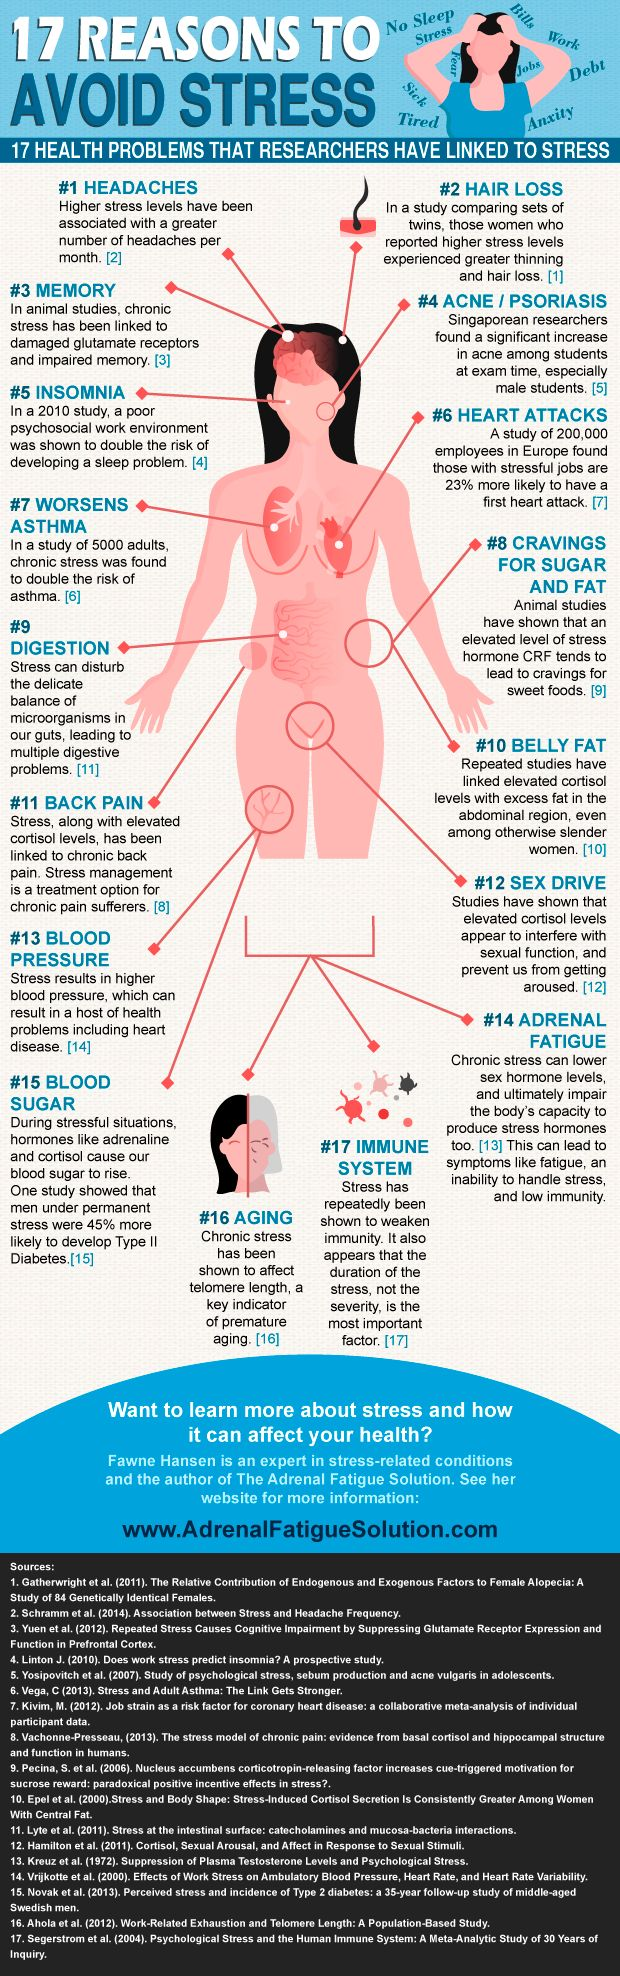 Stress! This is an amazing infographic listing 17 serious health problems that researchers have linked to #stress. Read it, and start making changes!